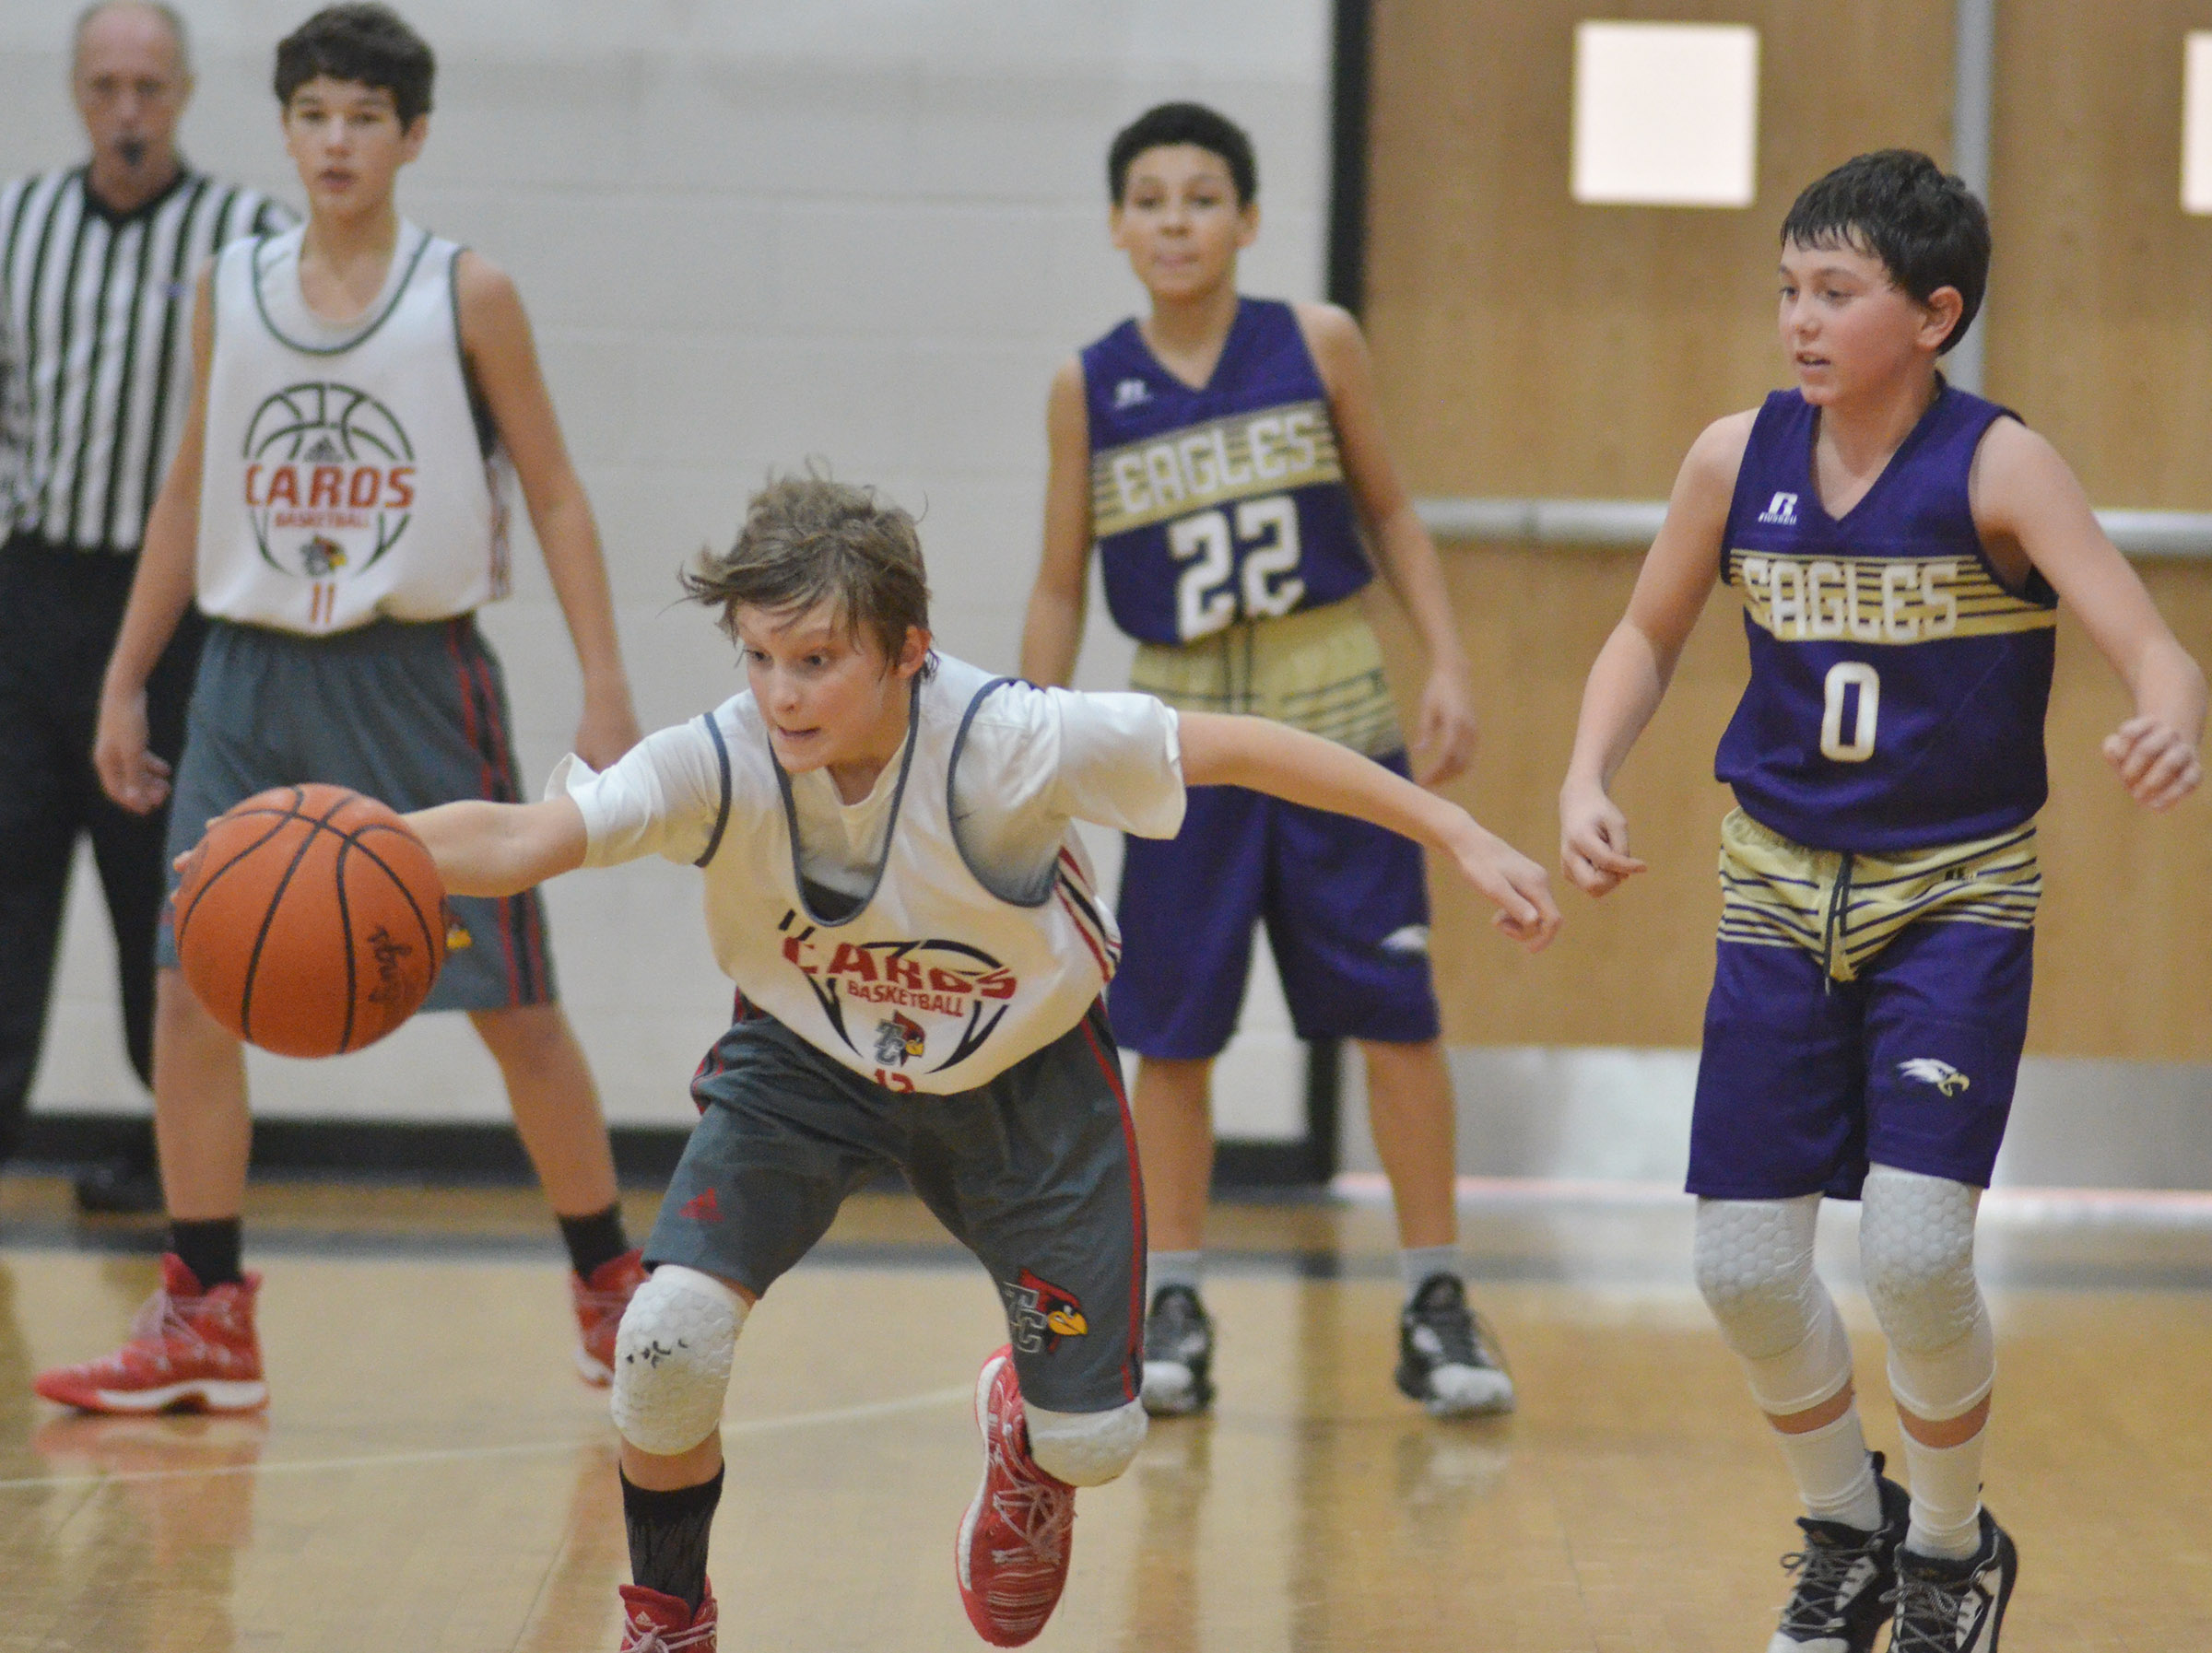 CMS seventh-graders Brice Spaw, at left, and Dakota Harris play defense.